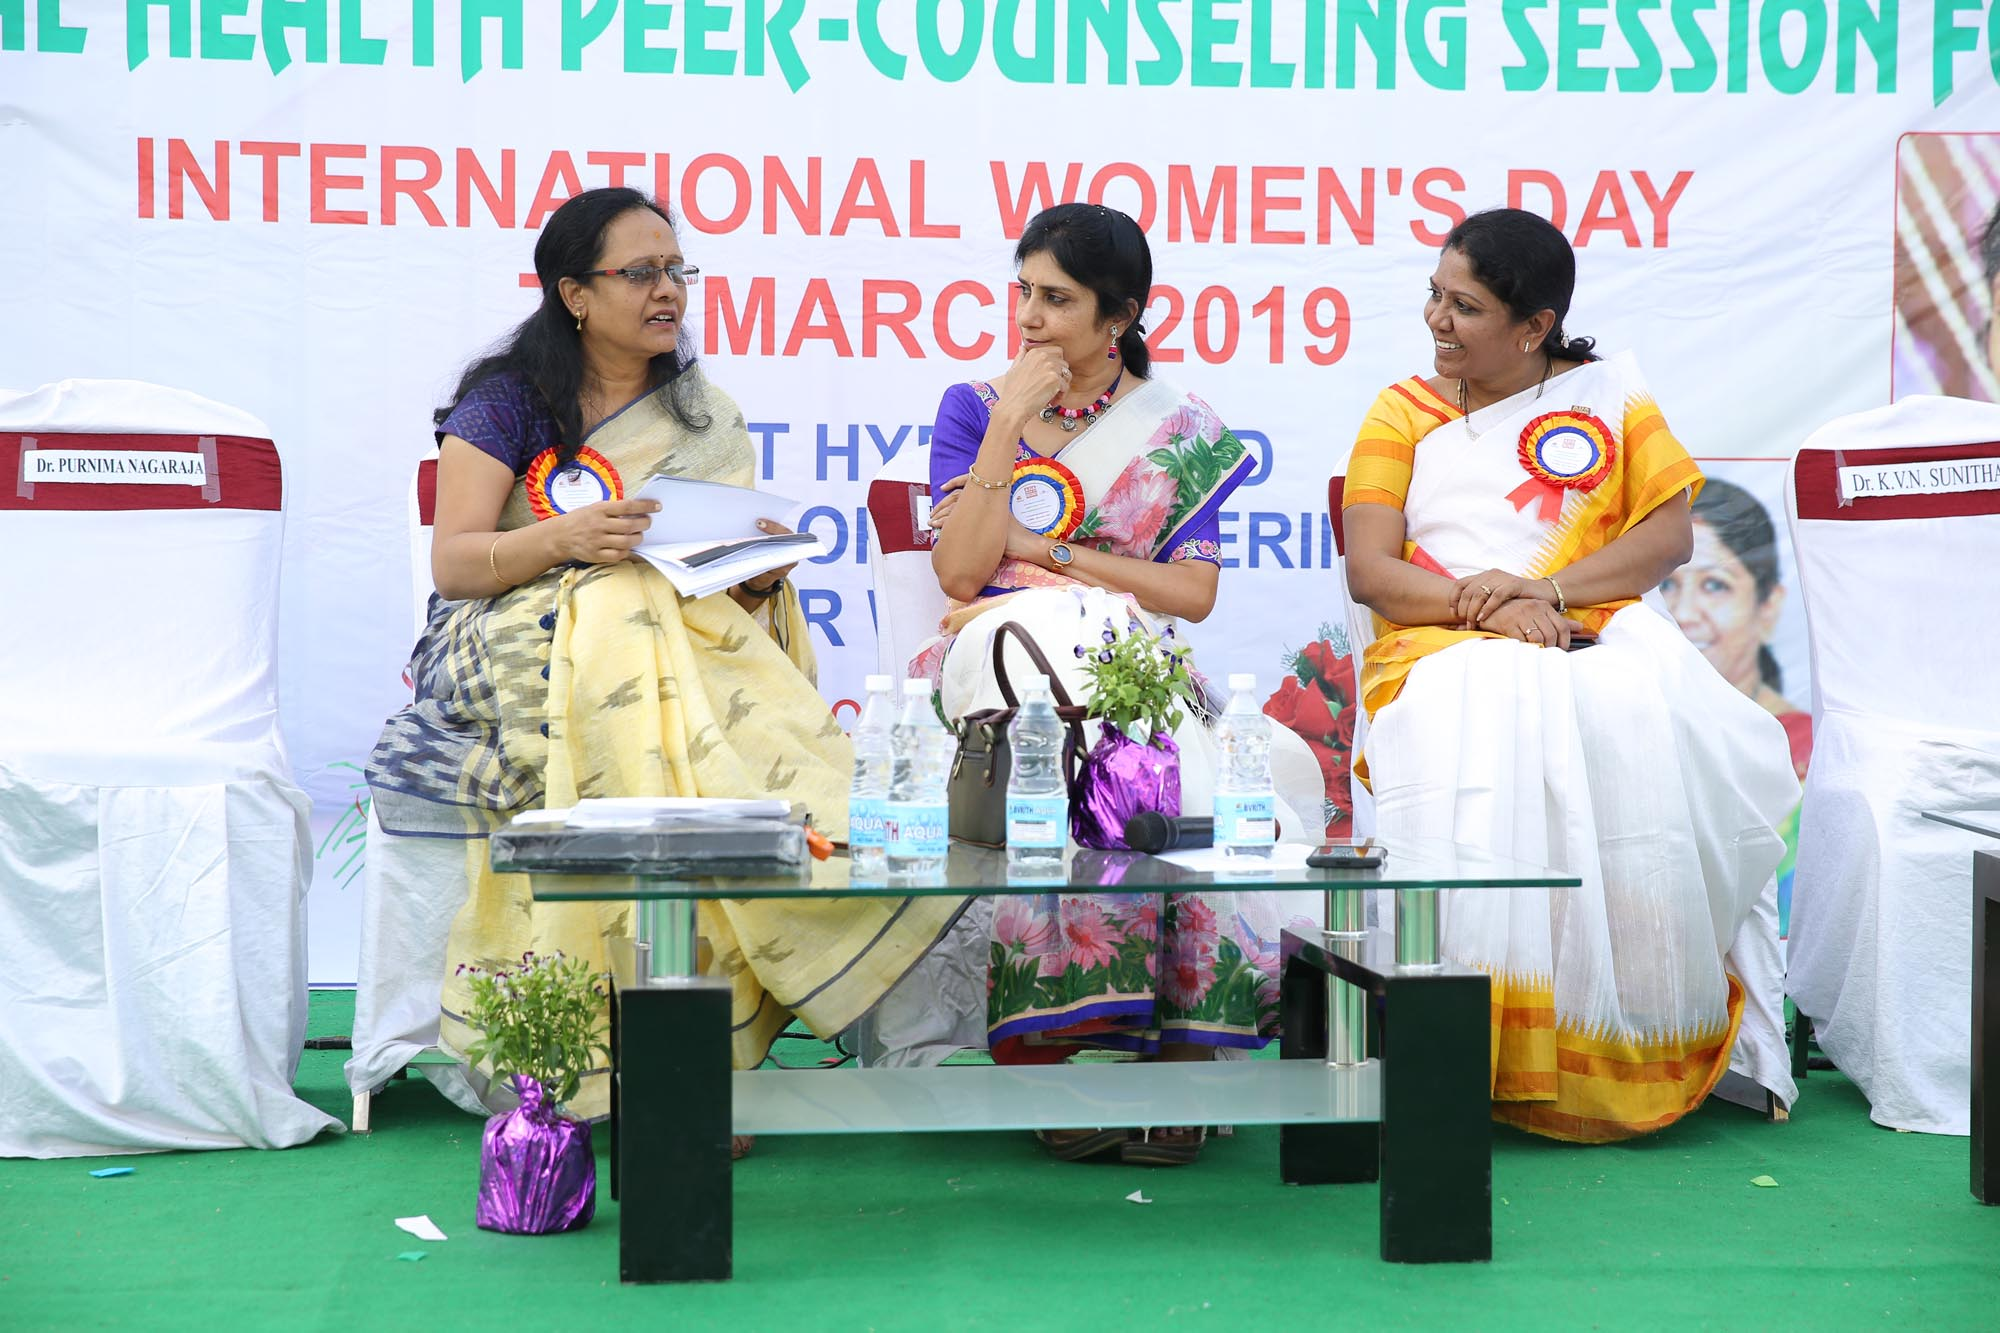 Chief Guest Dr. Vasudha Rani, Adjudicator, Smt. Anuradha Vishnu Raju and Dr. KVN Sunitha, Principal on the stage